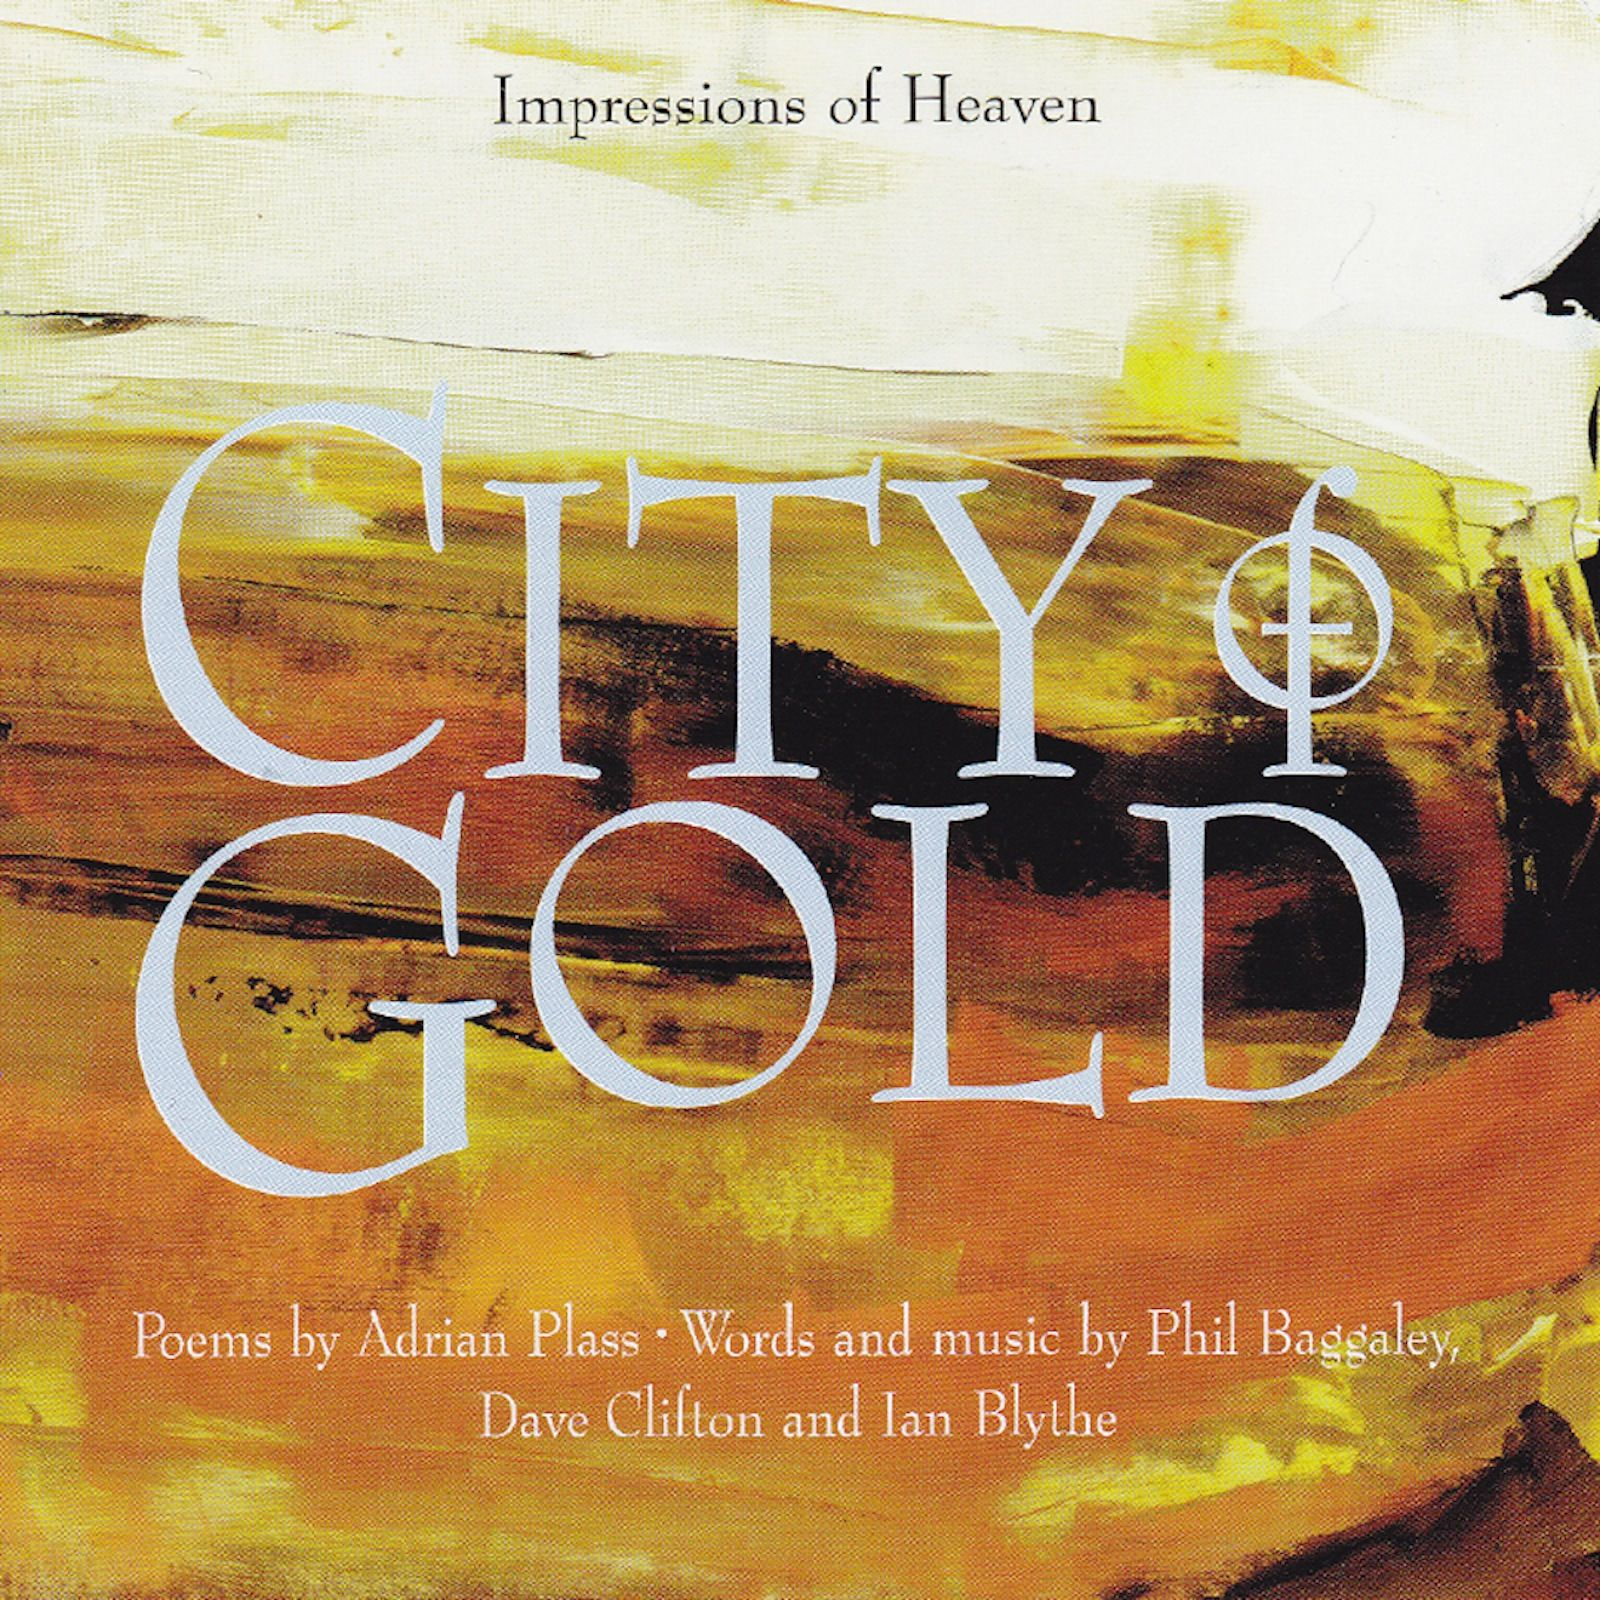 The City Of Gold Project